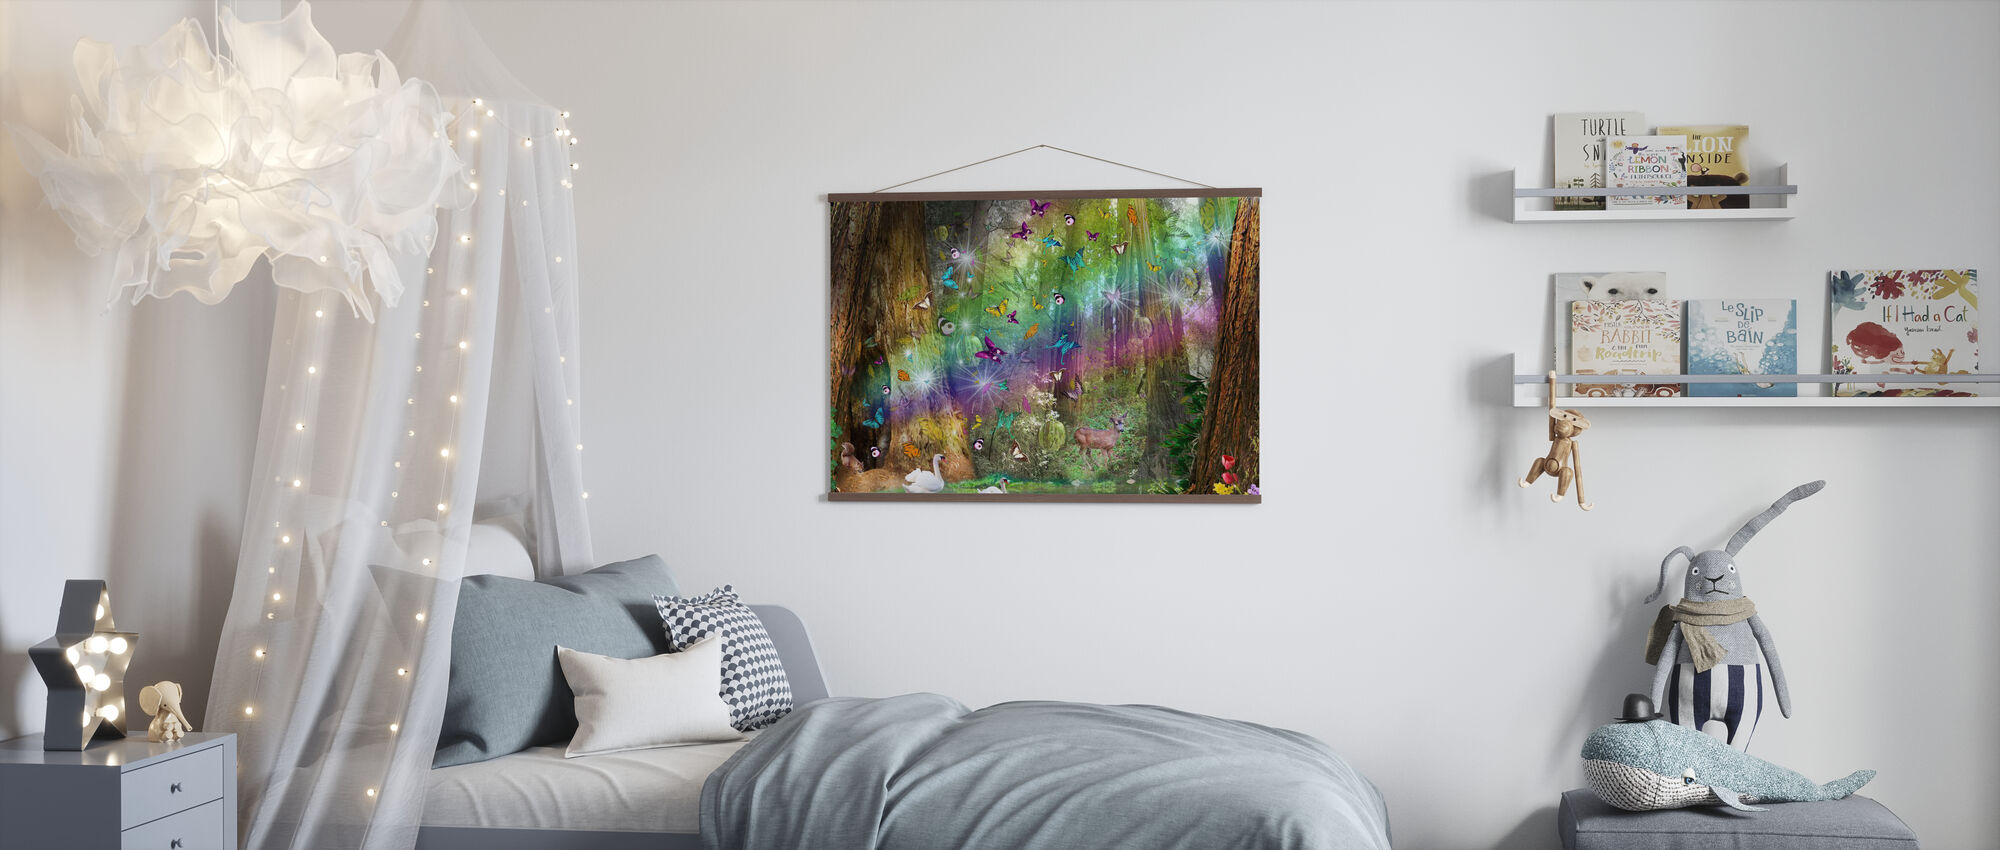 Roter Wald Paradies - Poster - Kinderzimmer